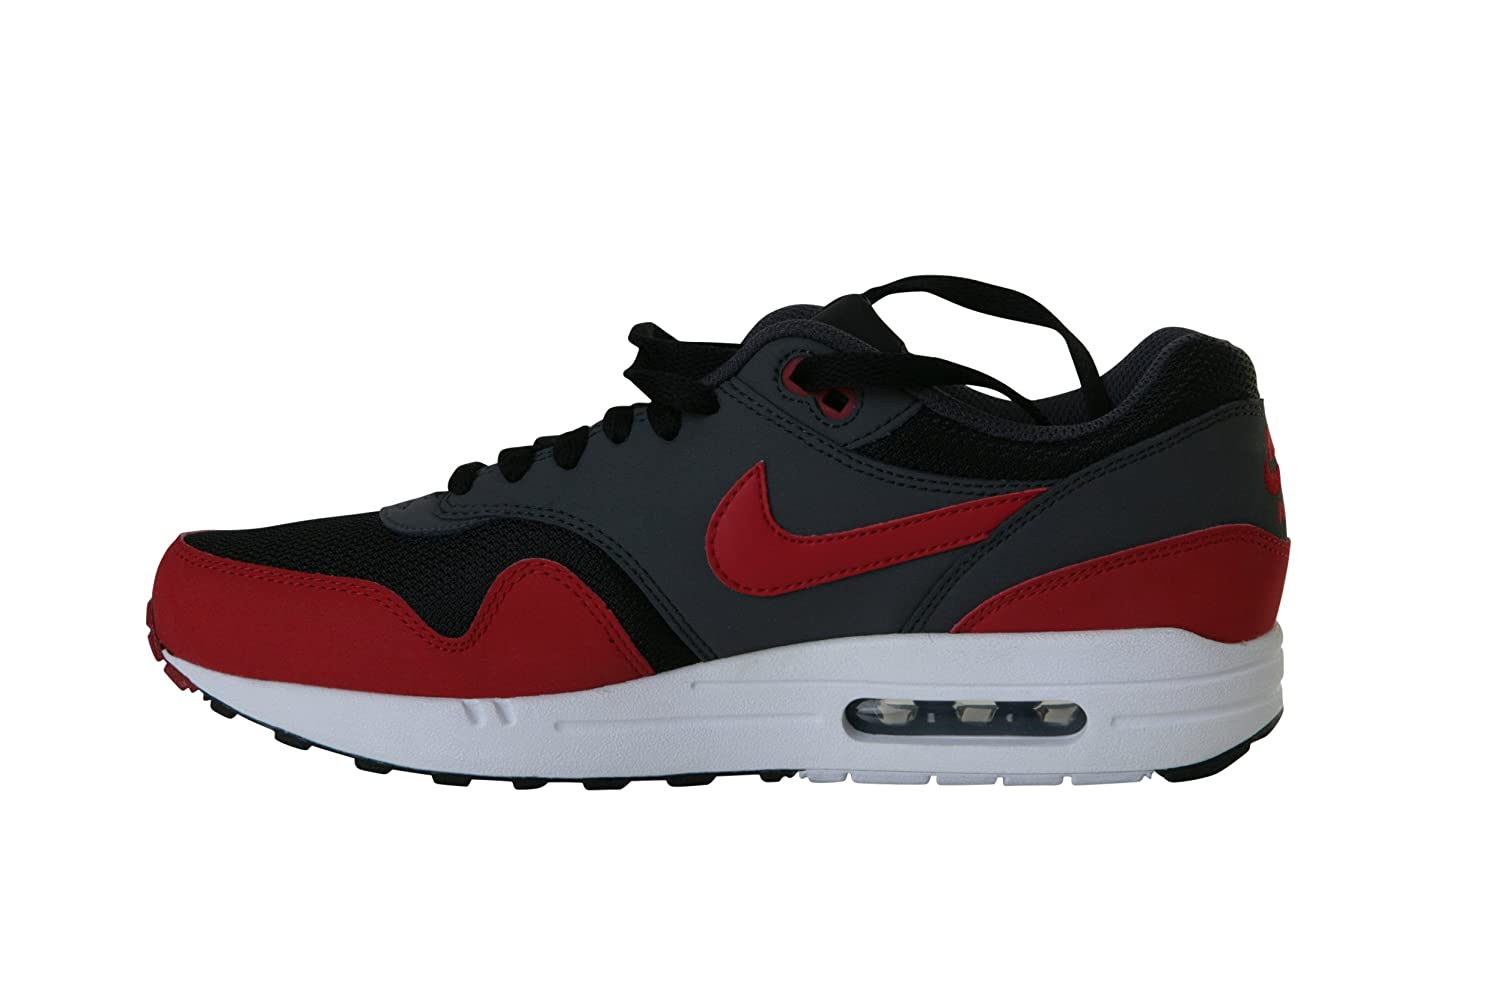 buy online f9c3b 4b726 NIKE Air Max 1 Essential 537383 061 Trainers for Men  Amazon.co.uk  Shoes    Bags